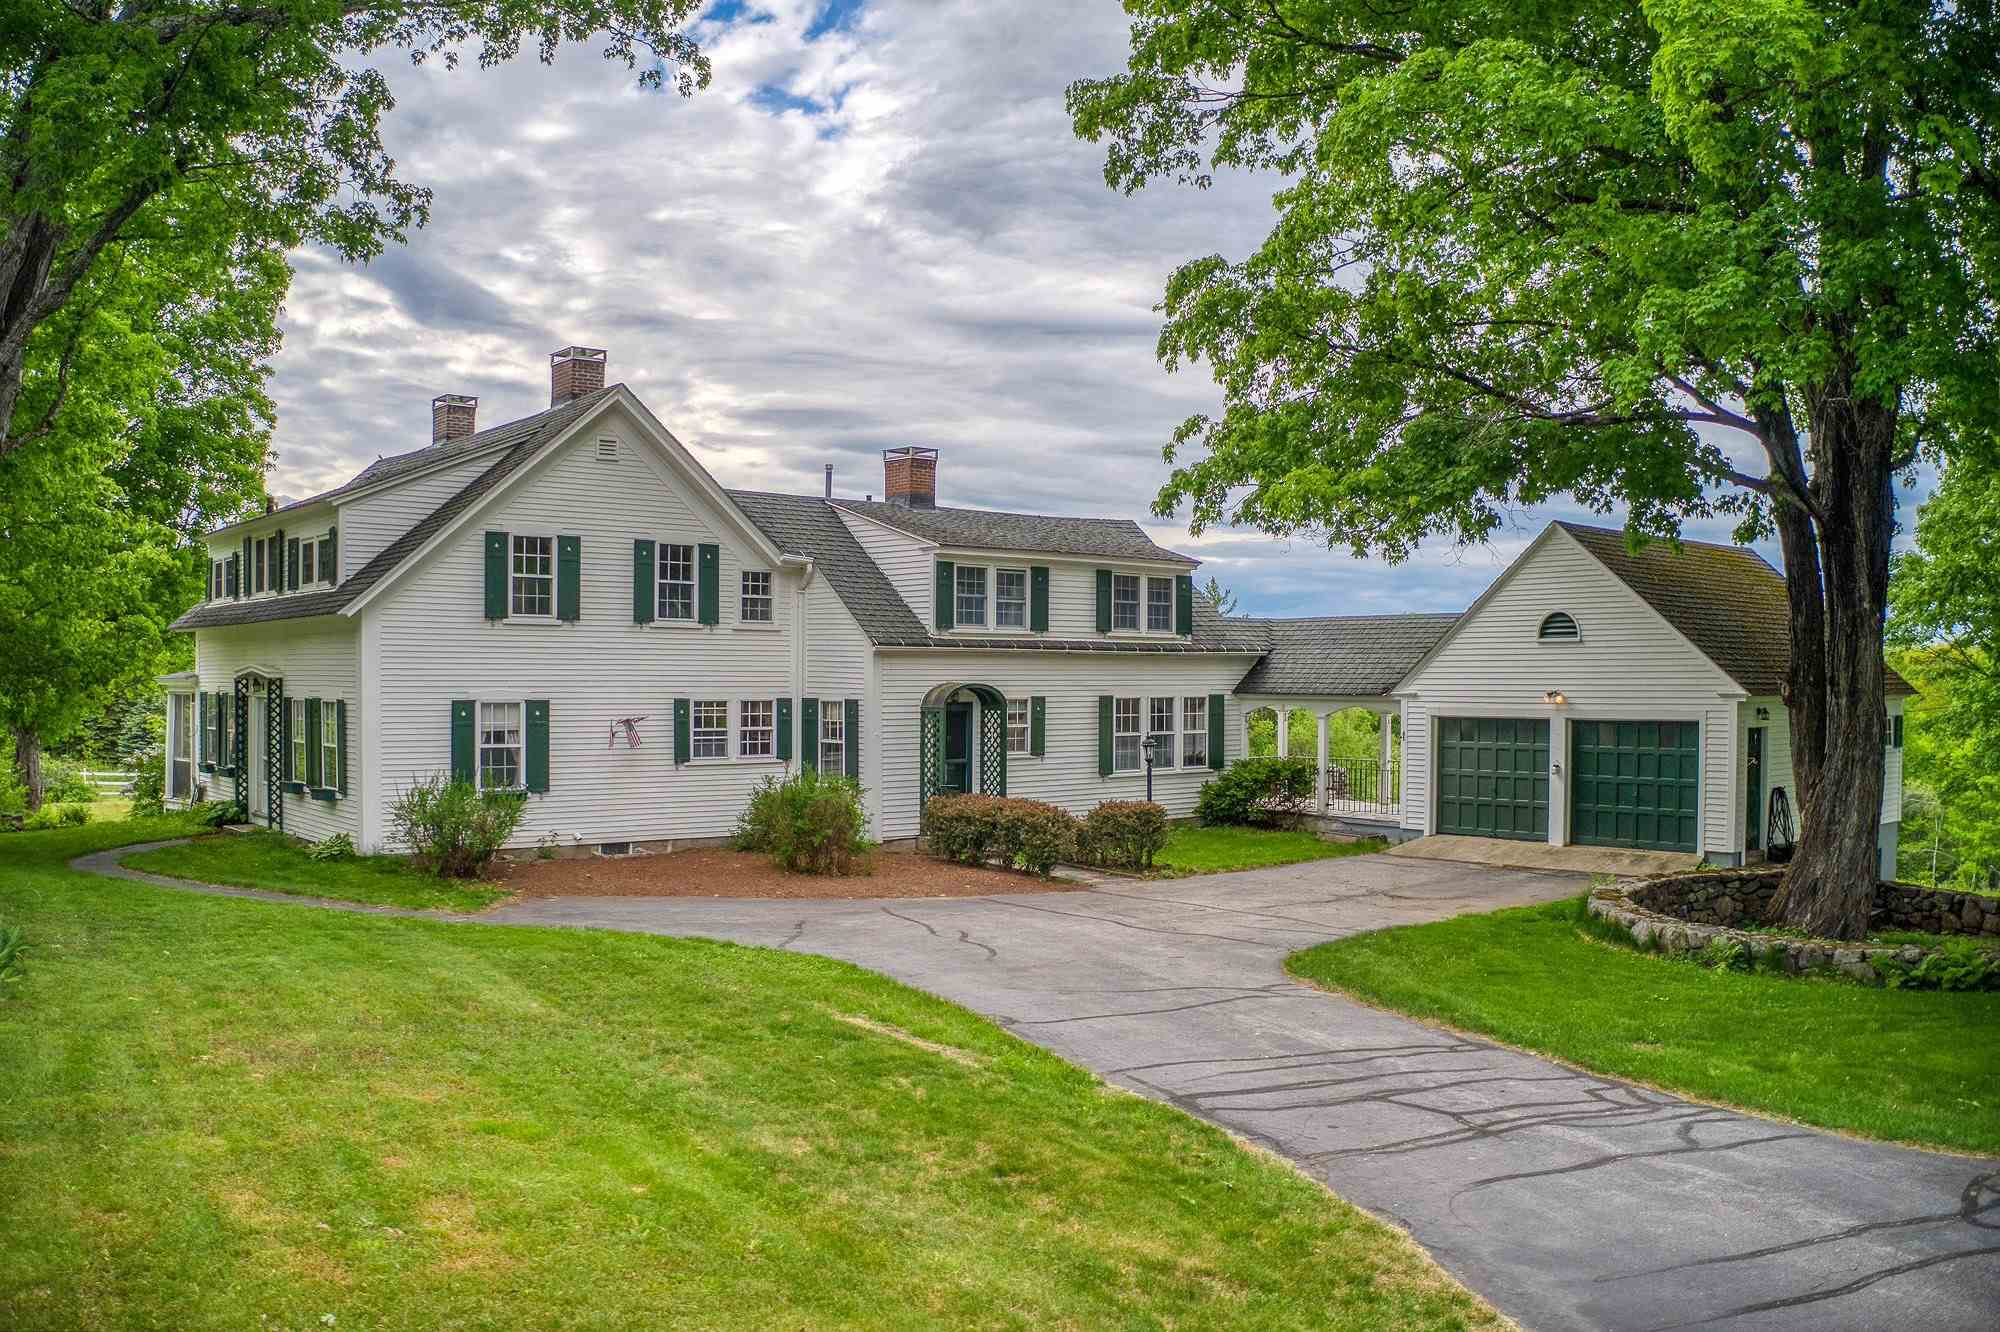 HILL NHHomes for sale